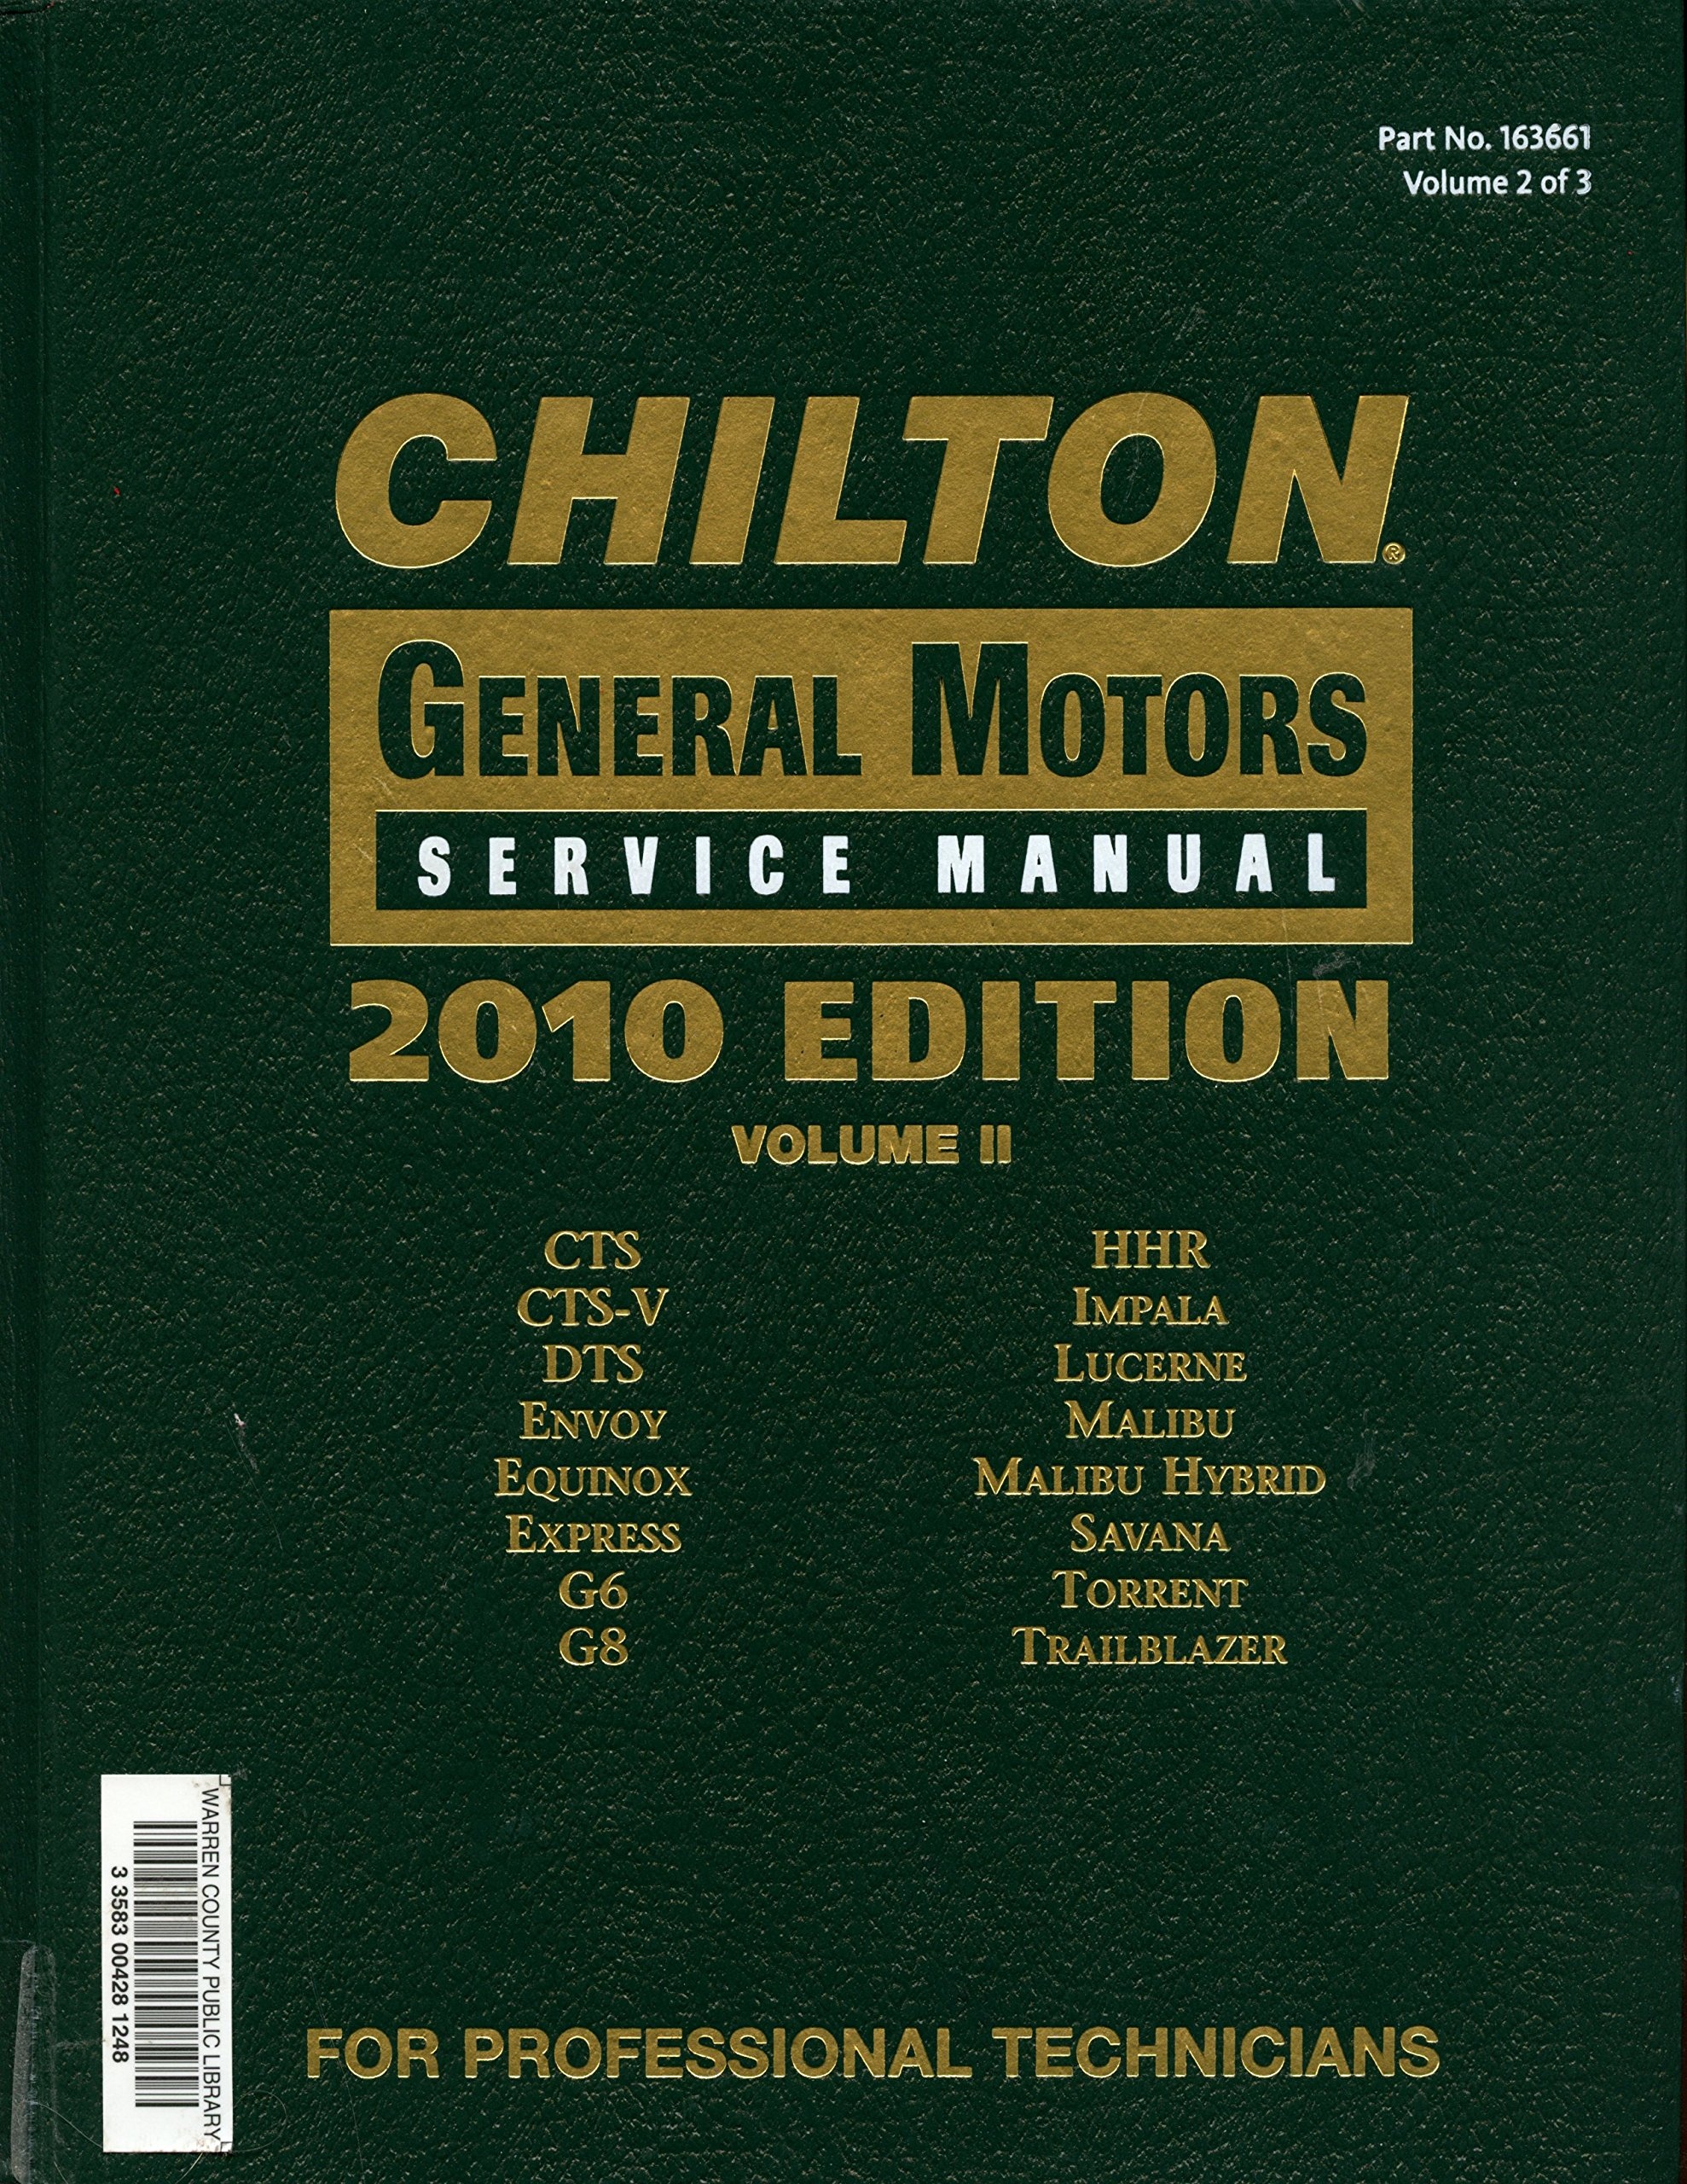 Chilton General Motors Service Manual 2010 Edition Volume II Two 2 CTS,  CTS-V, DTS, Envoy, Equinox, : Cengage Learning: 9781111036591: Amazon.com:  Books